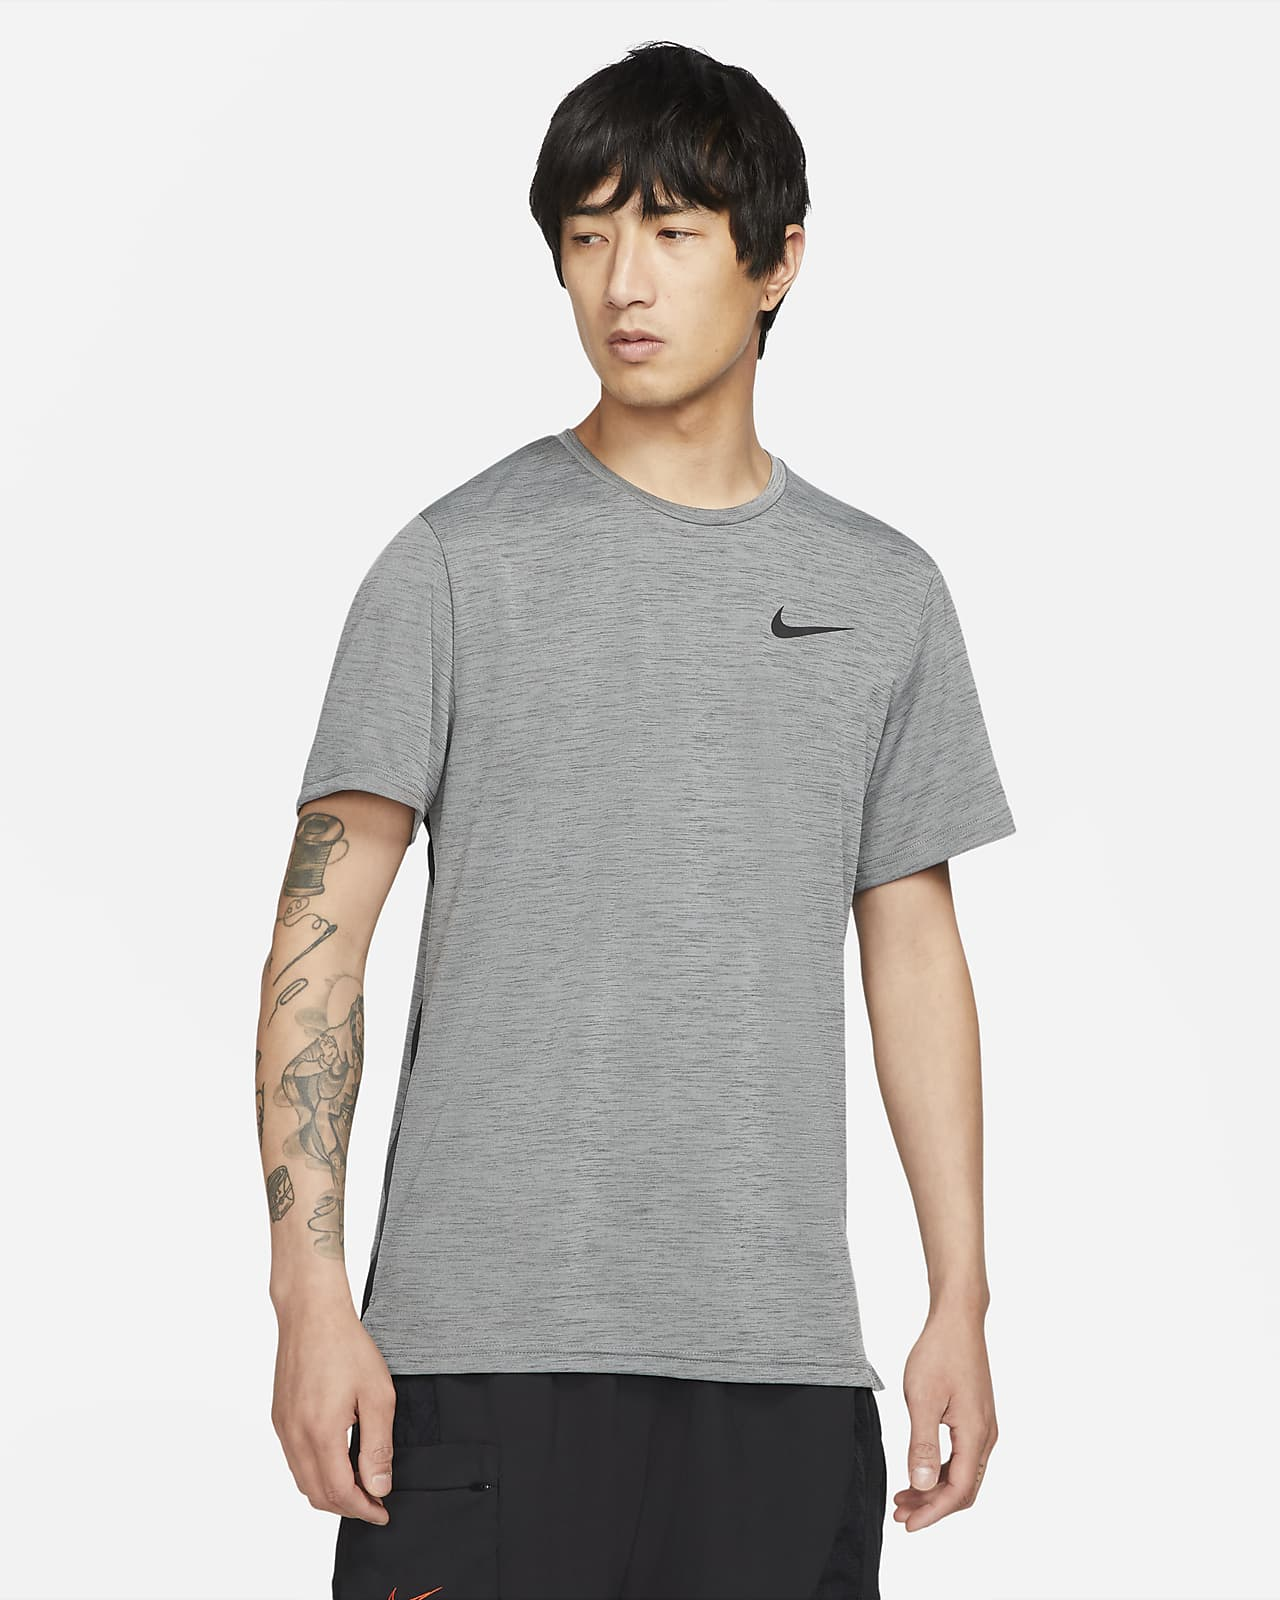 Nike Men's Short-Sleeve Top